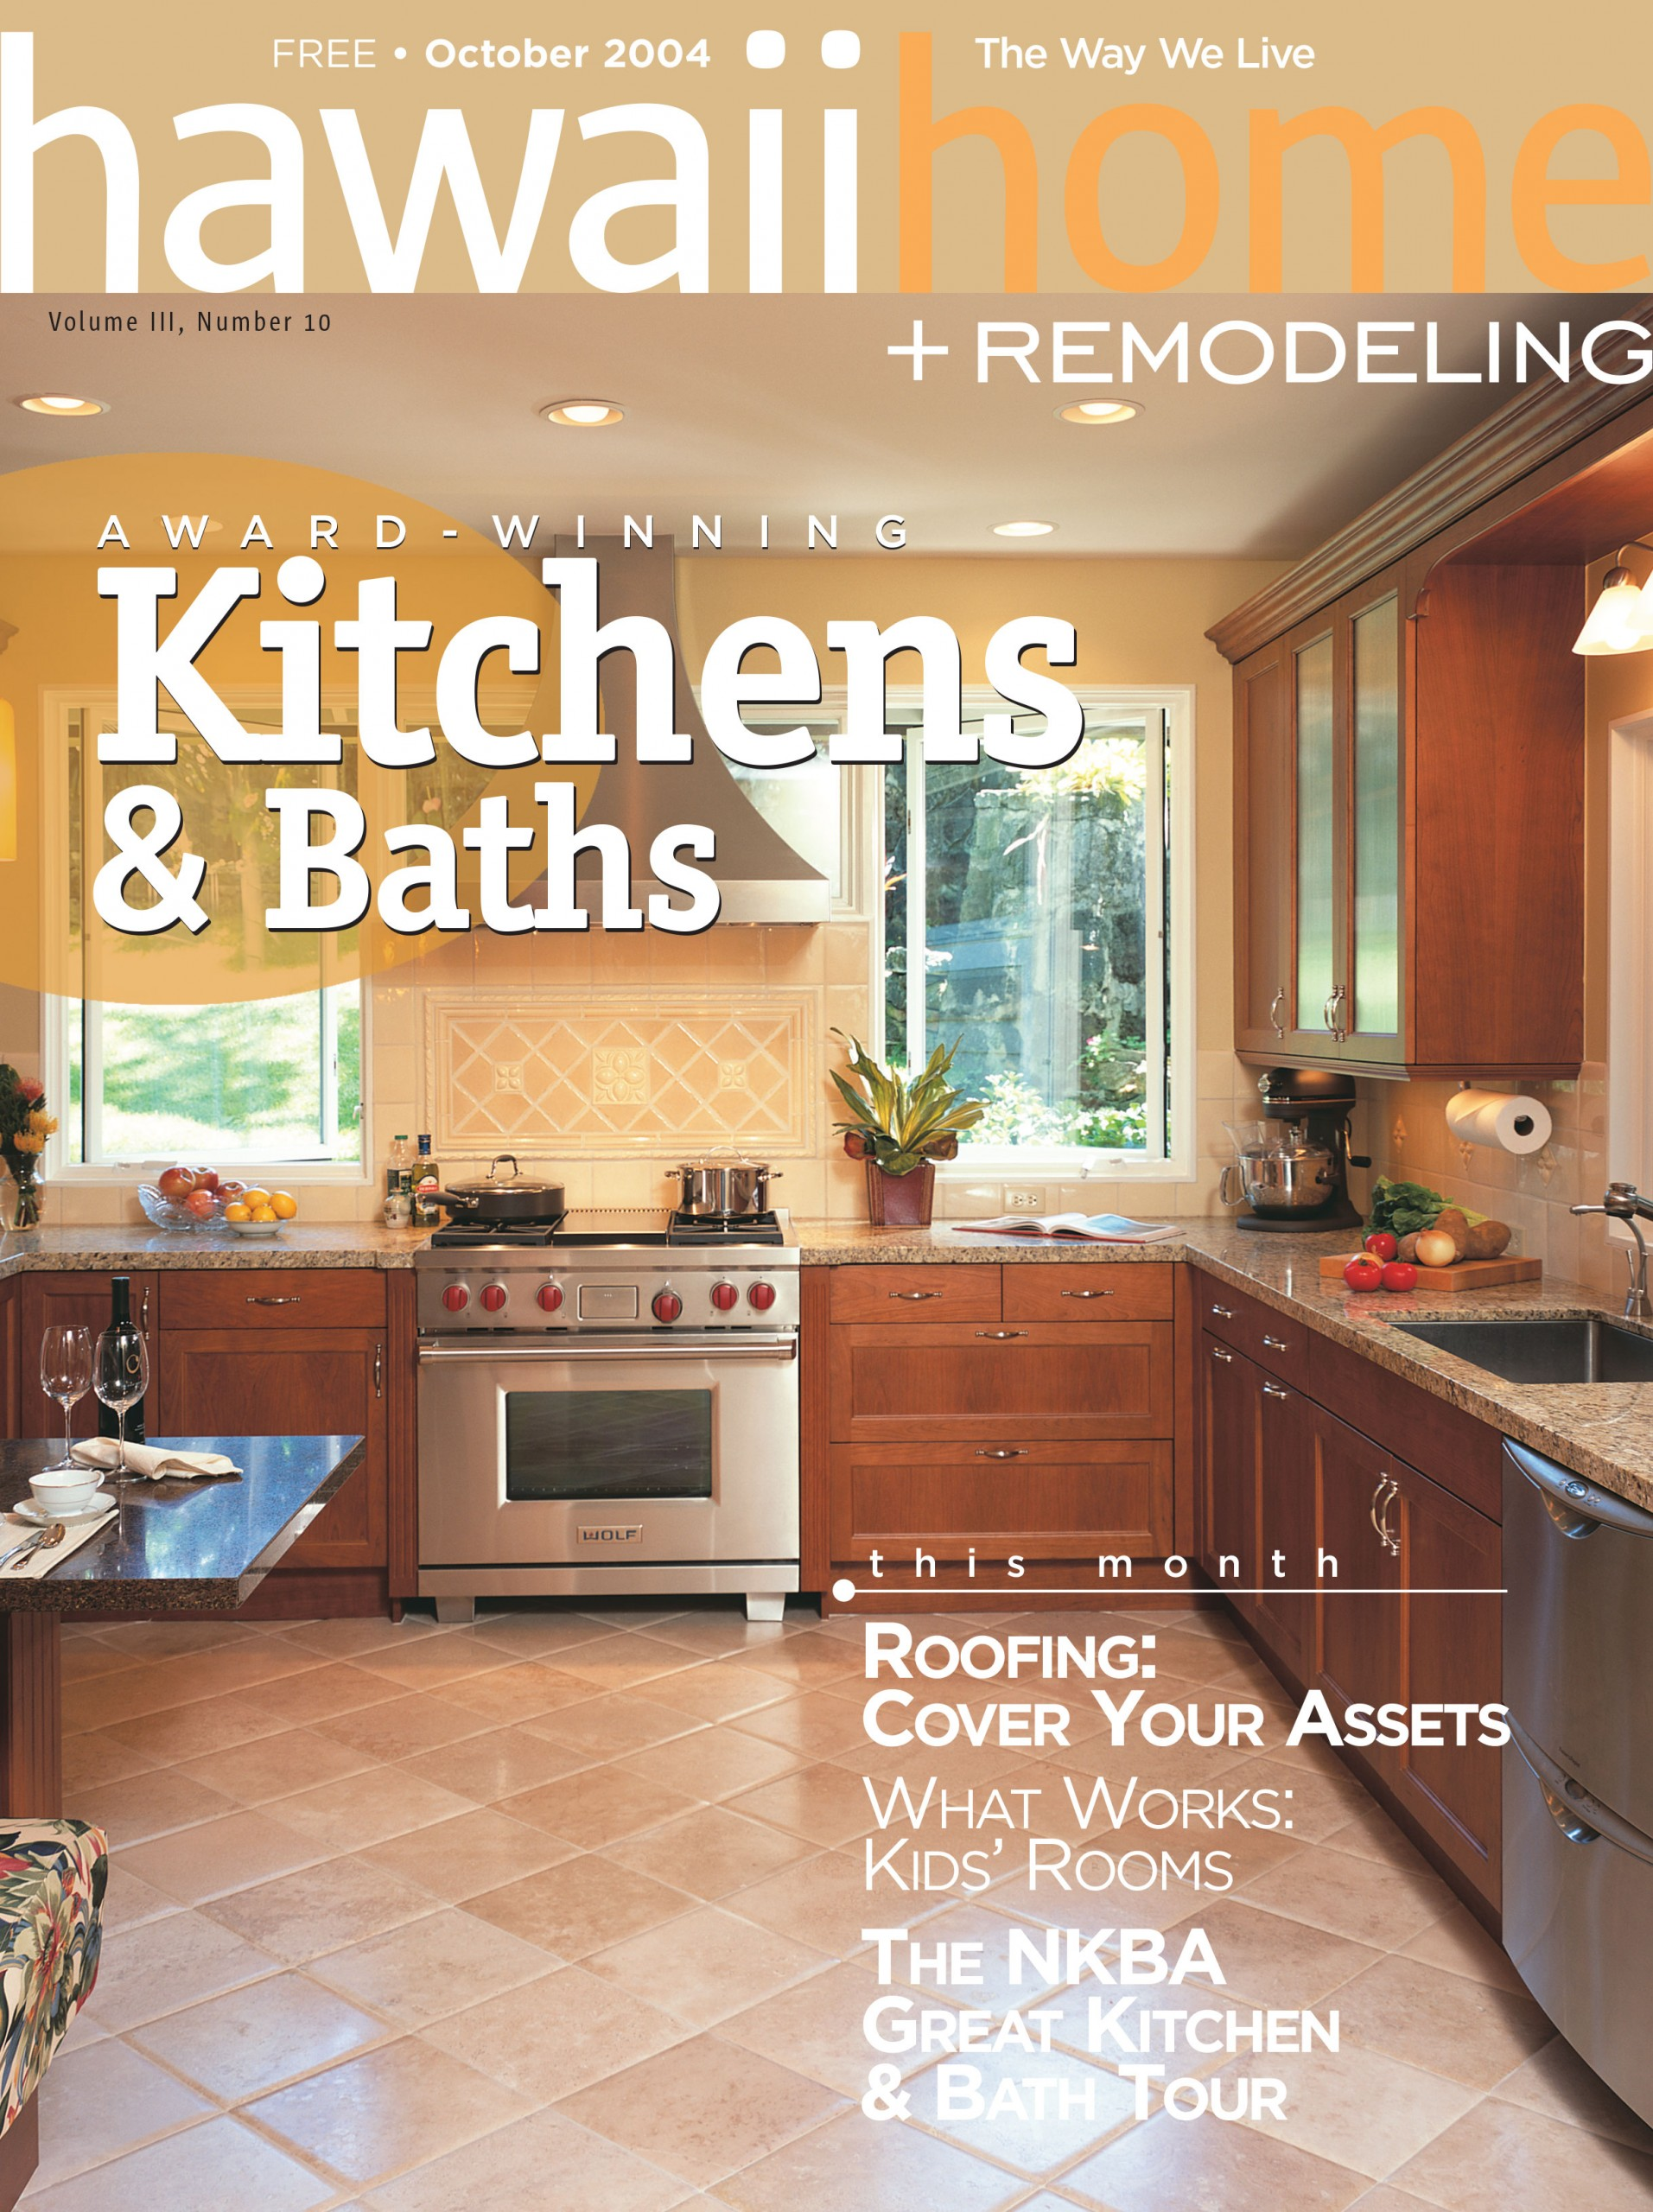 hawaii home + remodeling 2004 cover